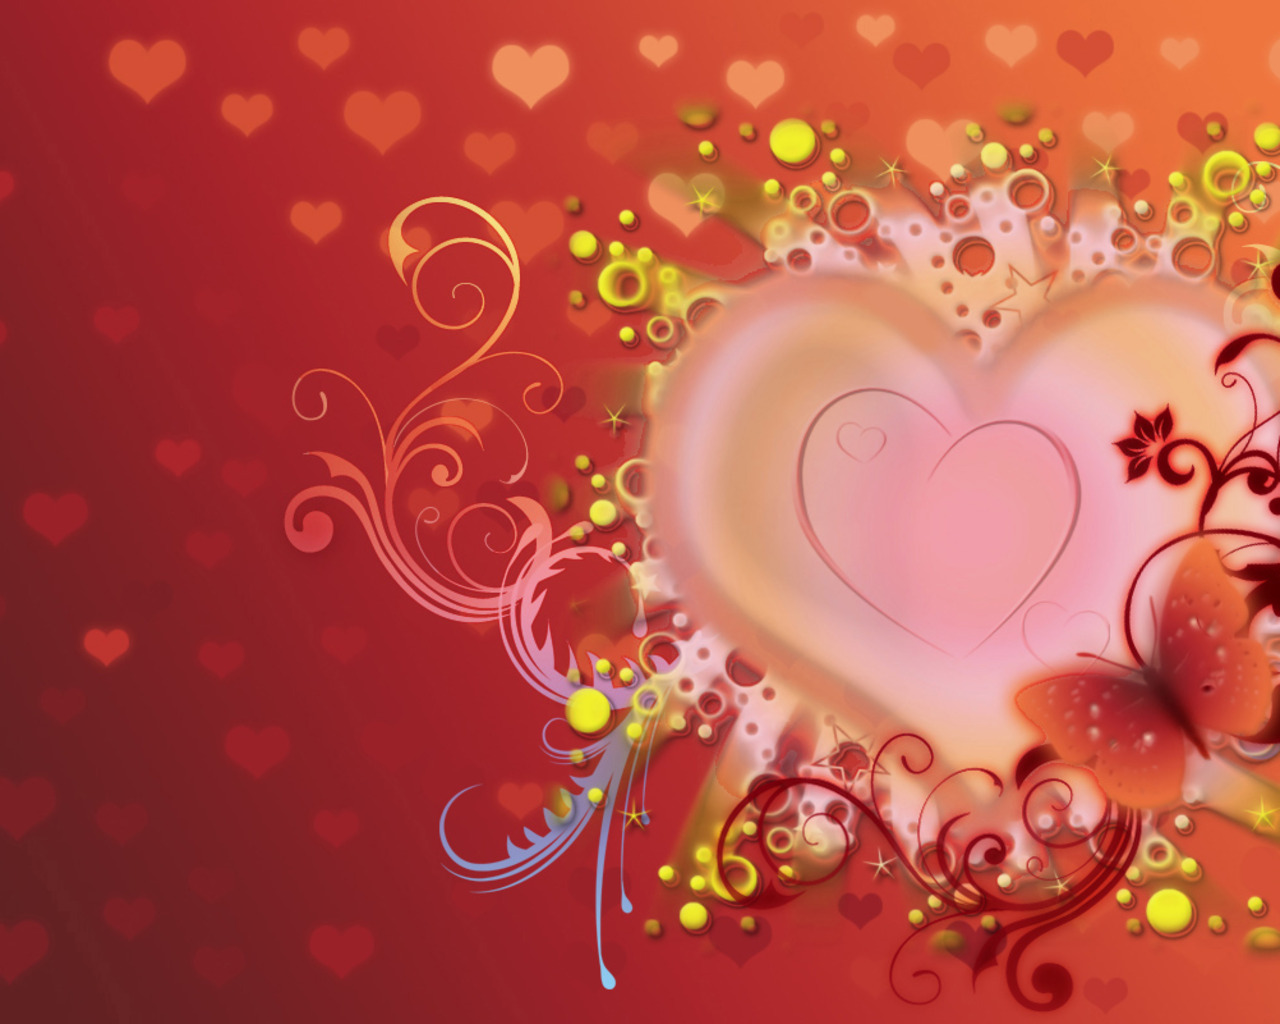 Valentines Day Desktop Backgrounds